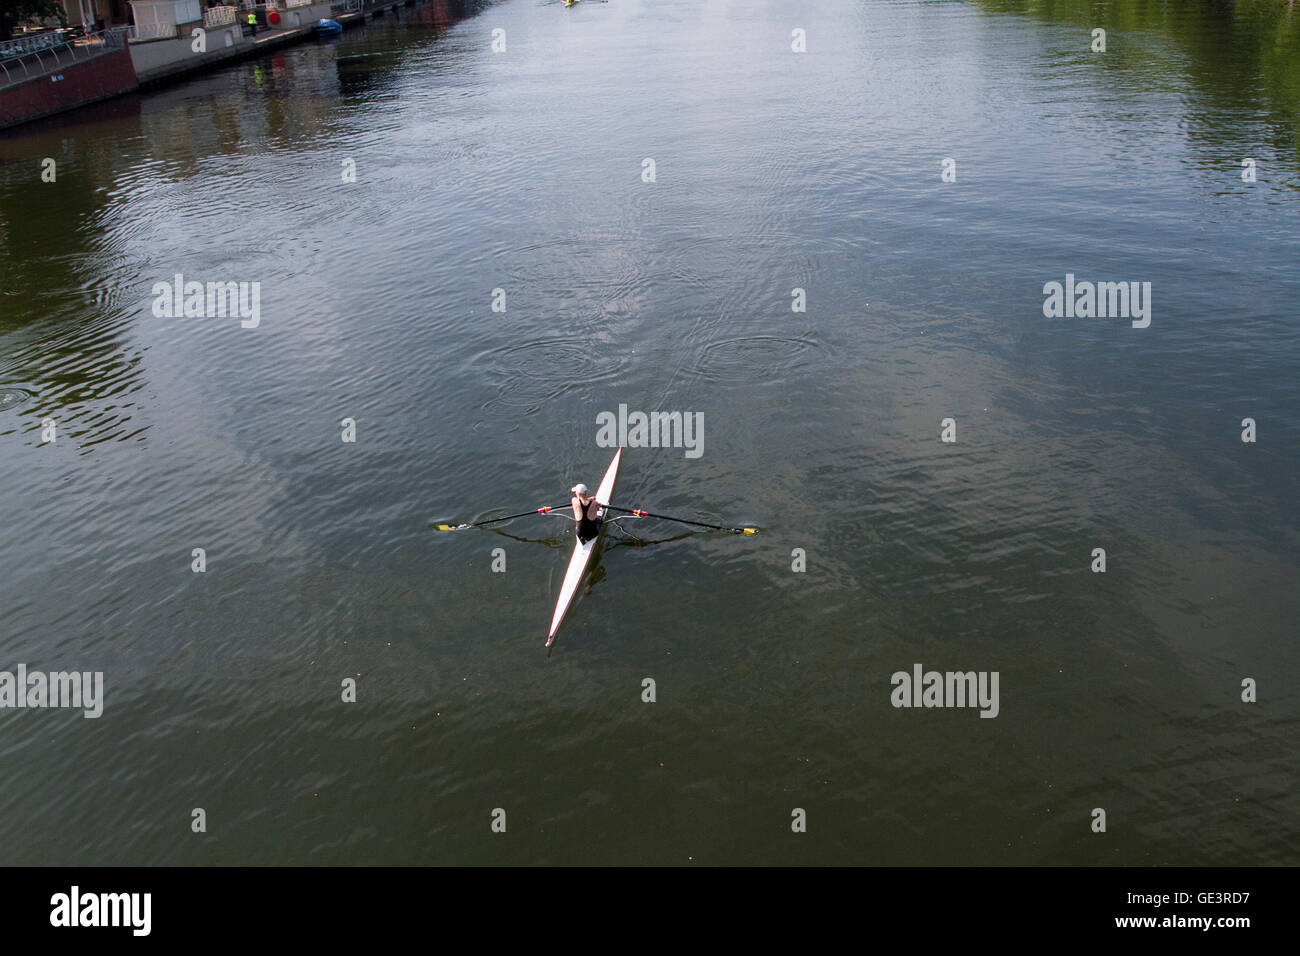 Kingston London,UK. 23rd July 2016. Rowing boats practice on River Thames in Kingston on a beautiful warm sunny Stock Photo